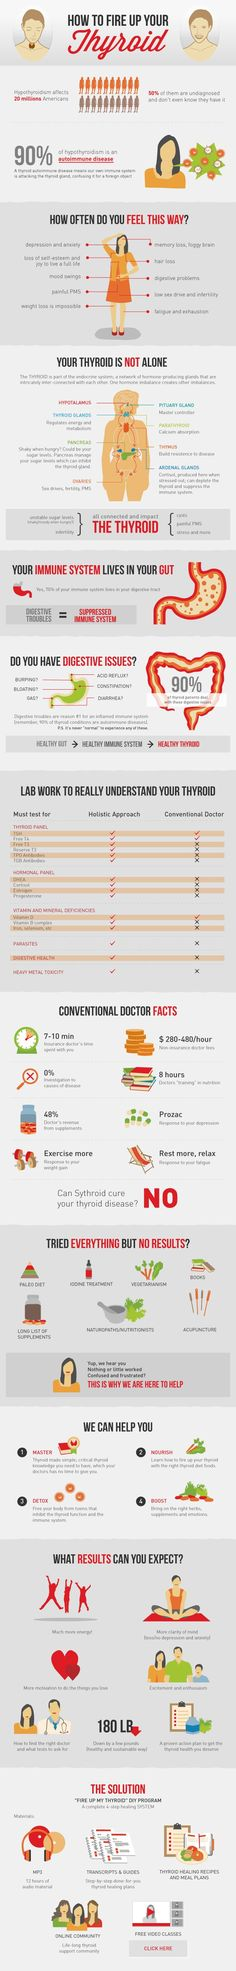 This is a great infographic. I especially like how it shows that you just cant medicate the thyroid without addressing the entire endocrine system. I wish they showed the link between gluten and thyroid problems. There's no need for anti-anxiety drugs and the myriad of other pharma to fix your problems. It all can be done with diet. You can completely reverse Hashimoto's, anxiety and infertility issues and many other endocrine diseases. How to Heal Thyroid with Foods - Fire Up My Thyroid